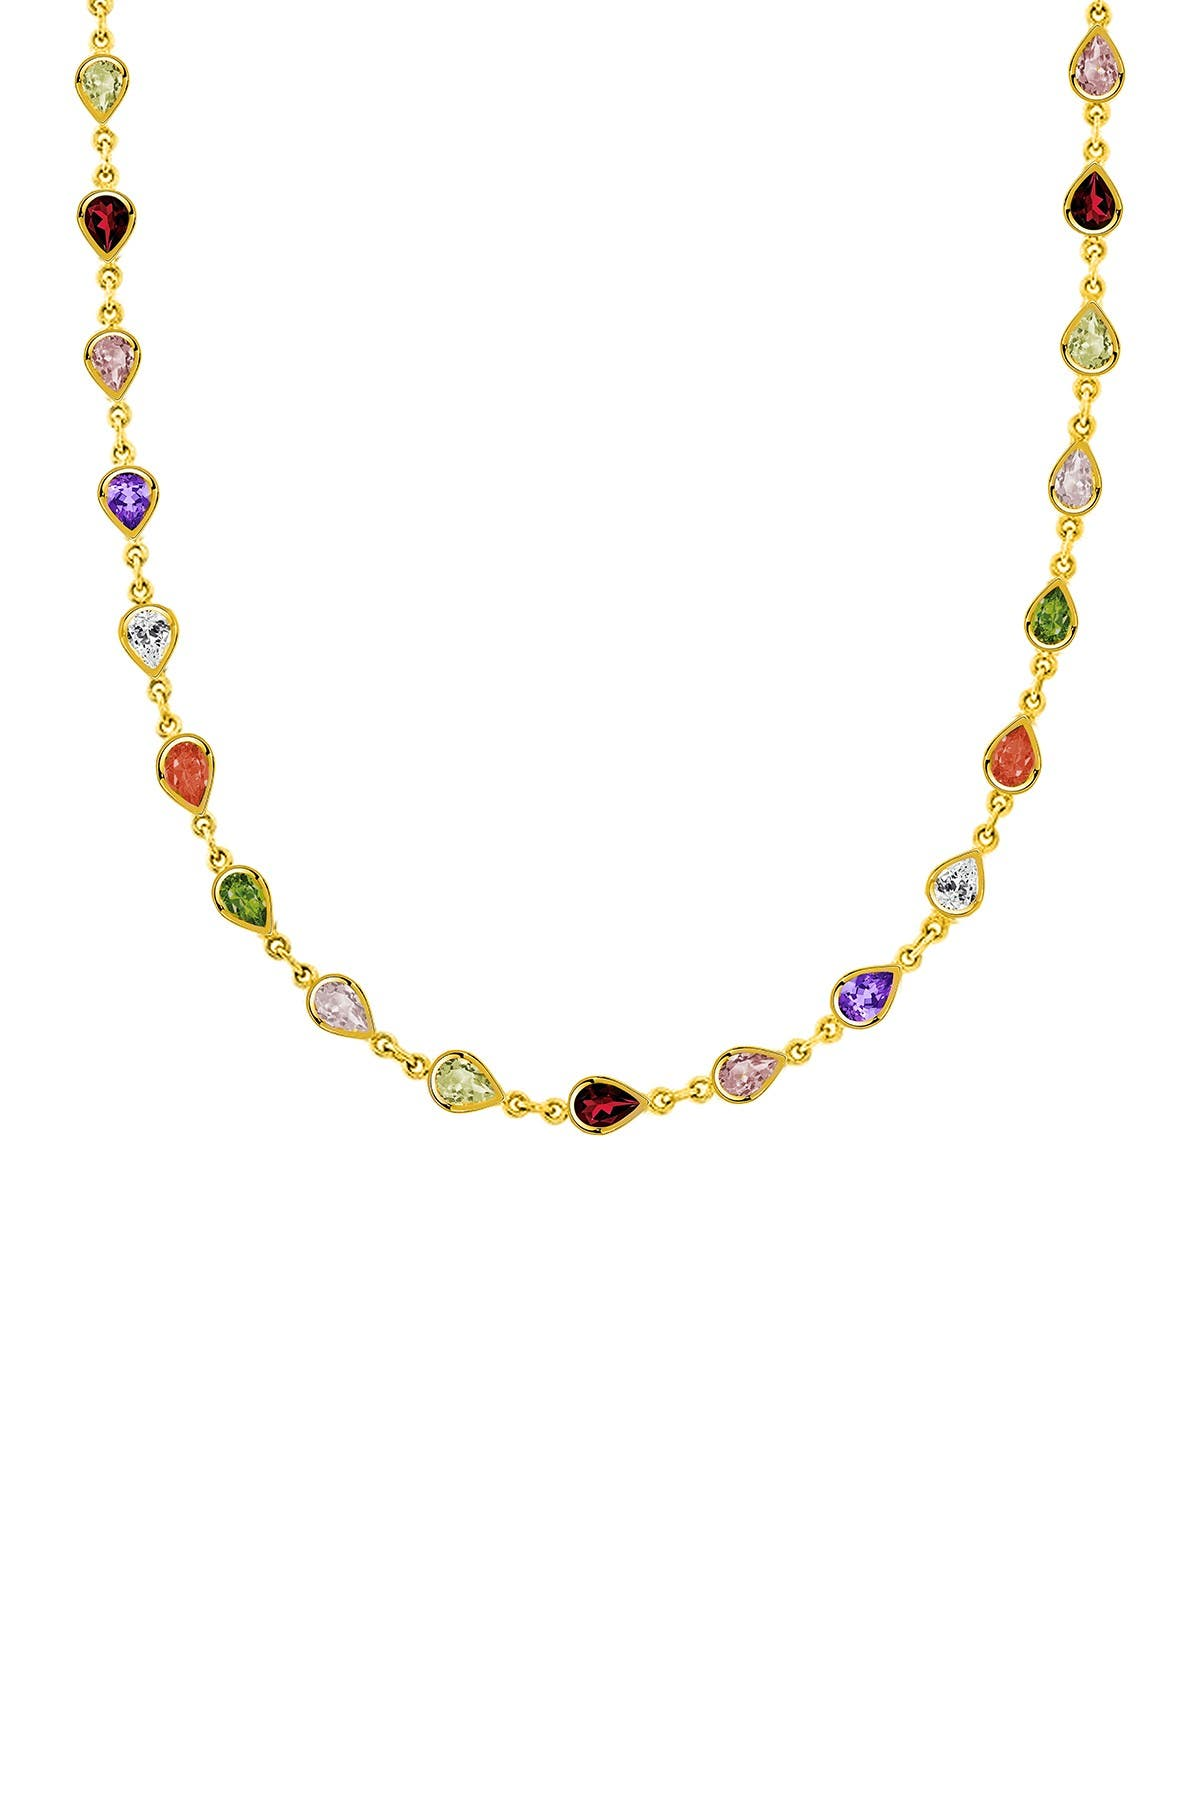 Image of Savvy Cie 18K Gold Vermeil Sterling Silver Cubic Zirconia Semi Precious Pear Necklace